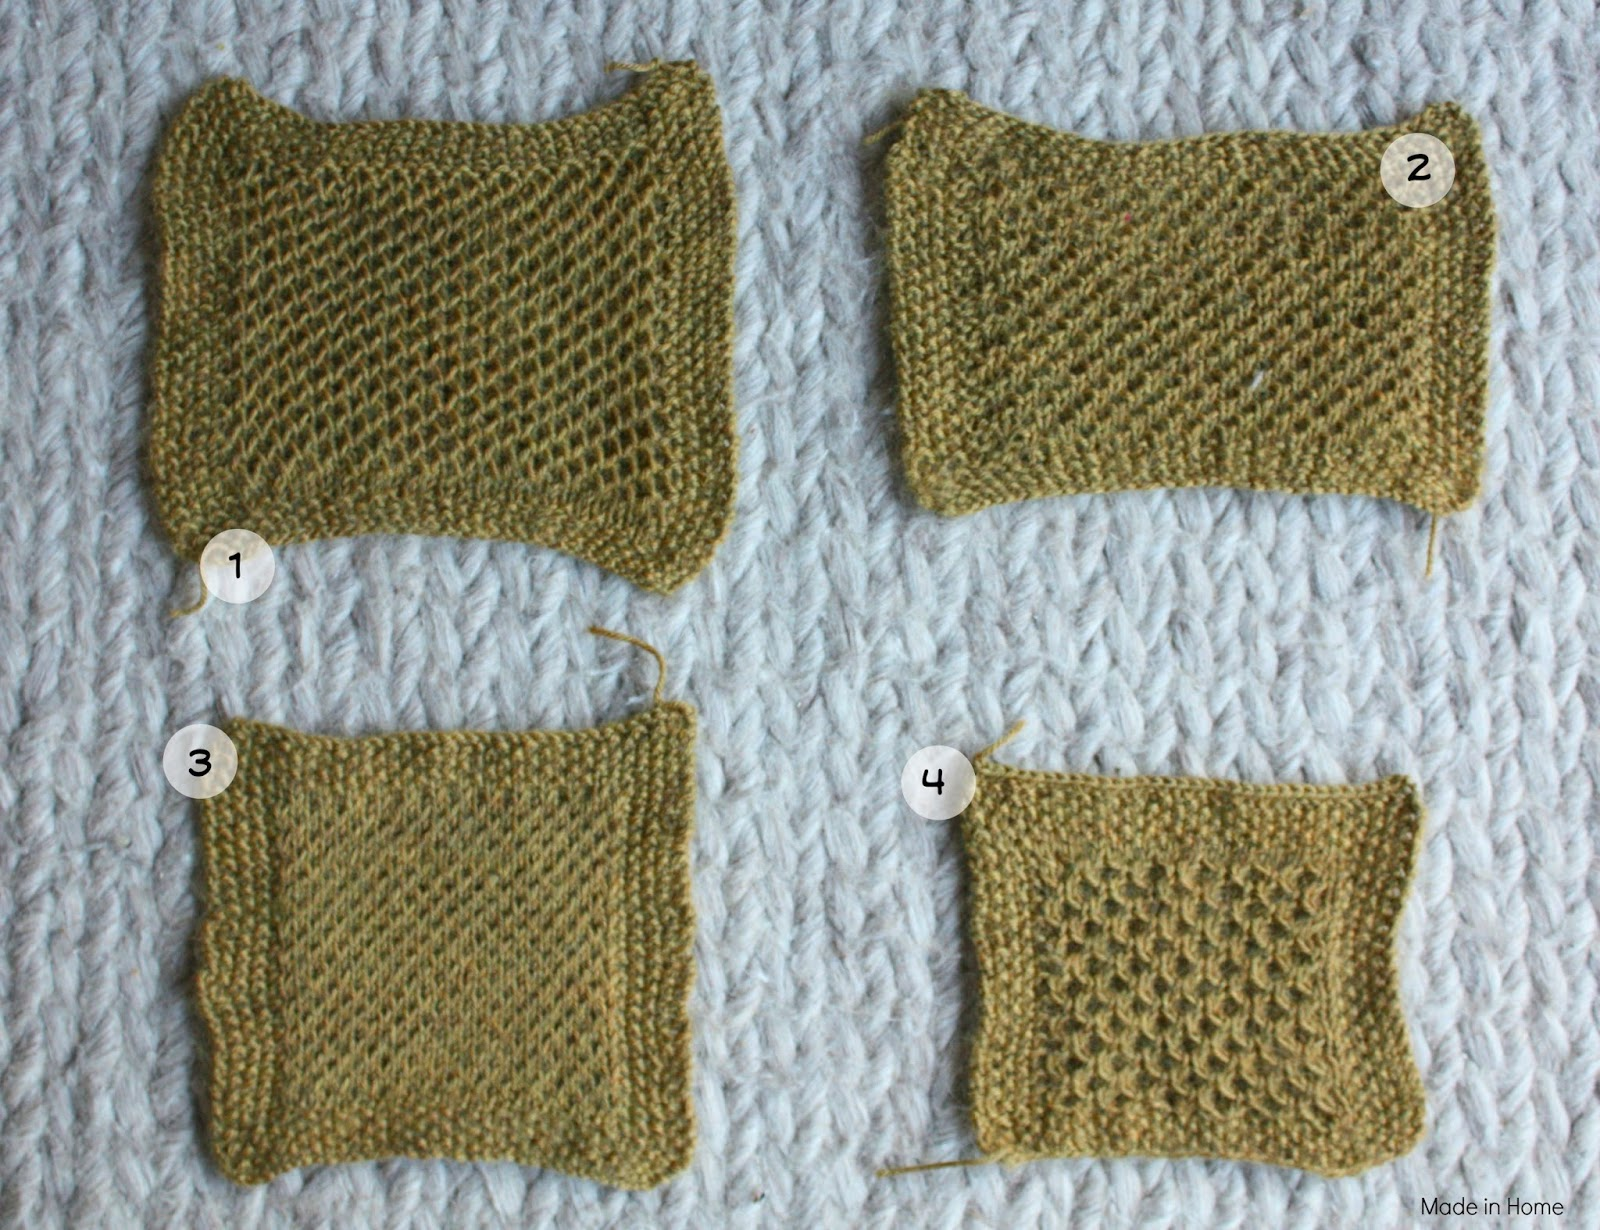 Made in Home: Study of honeycomb :: Knitting